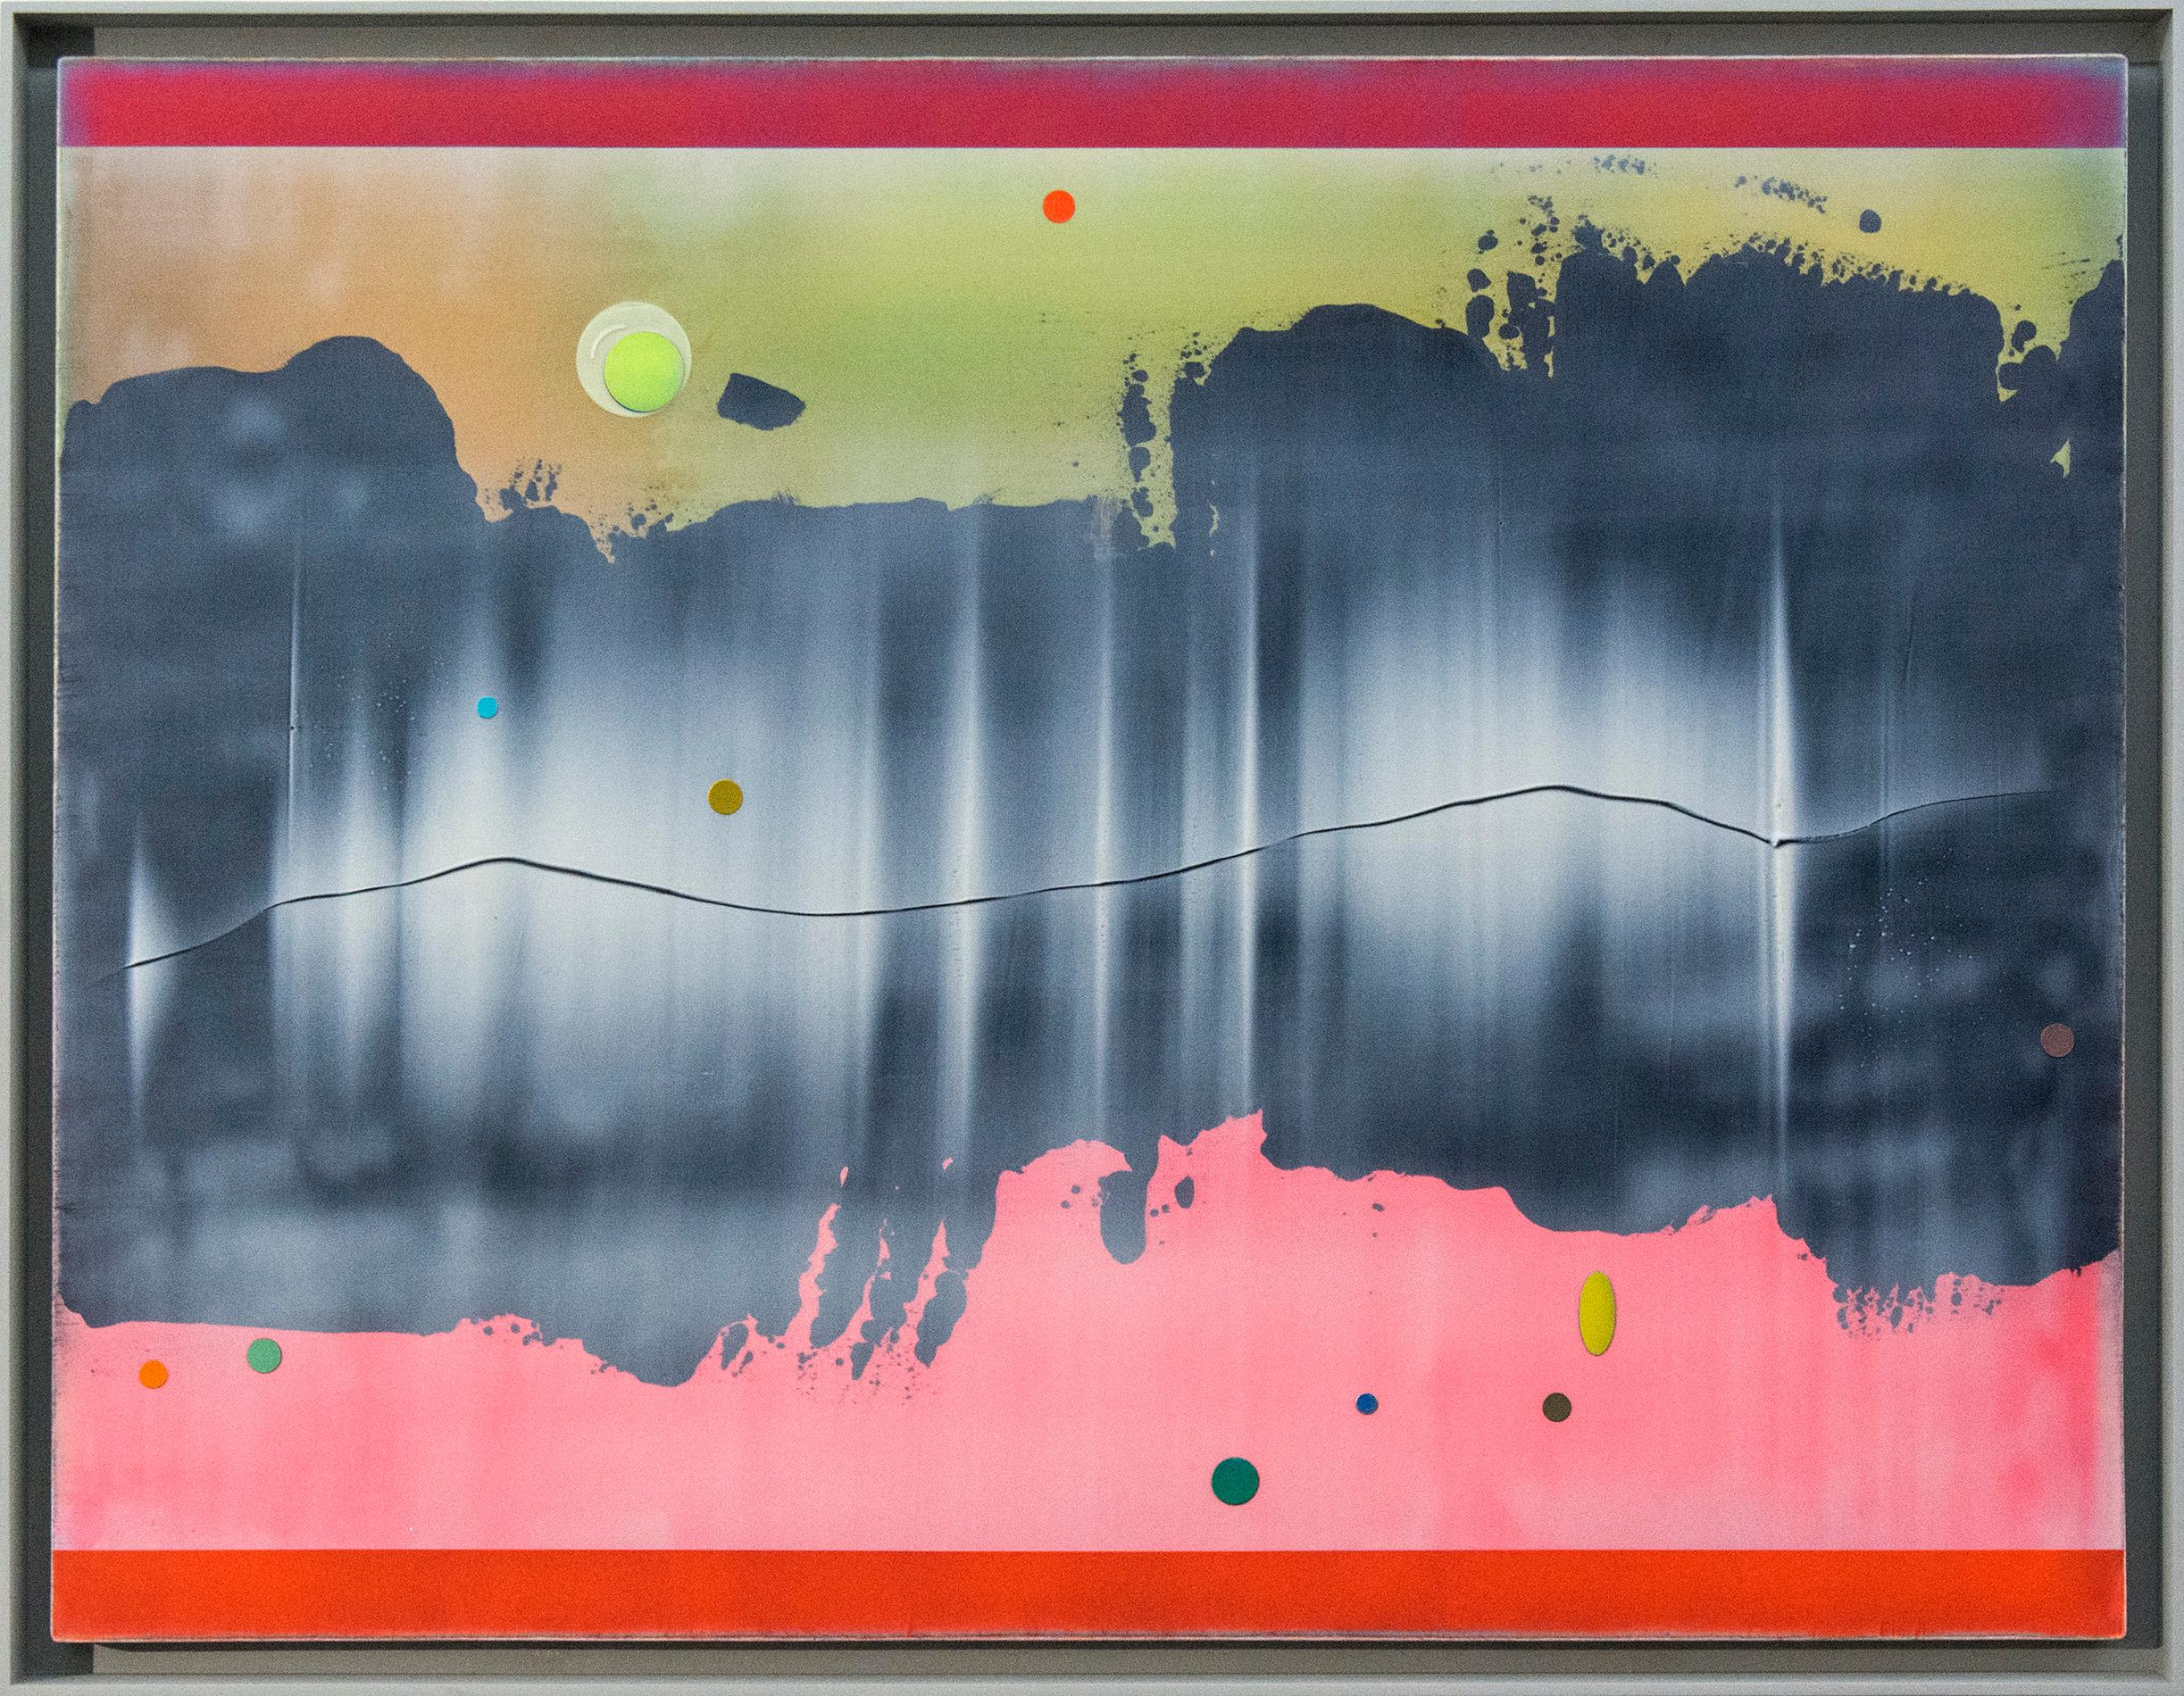 Resonance - Pink, Yellow, Grey and White Abstraction